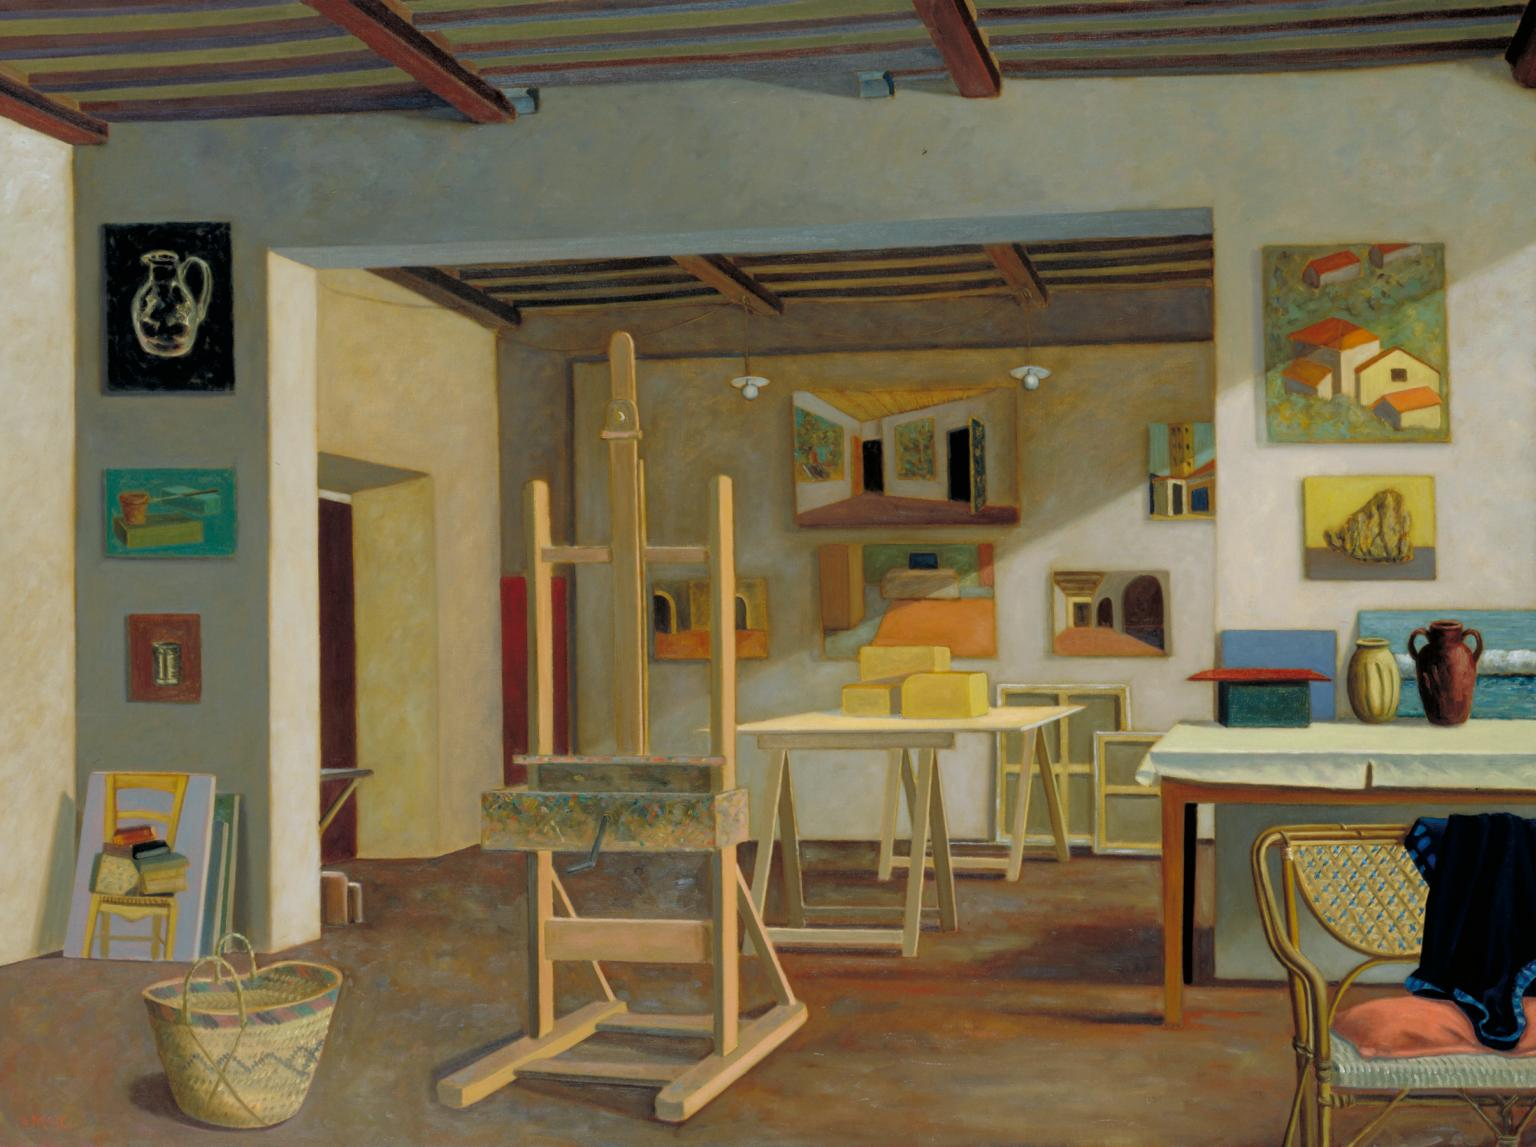 Large Studio at Castiglion 1993 by Stephen McKenna born 1939